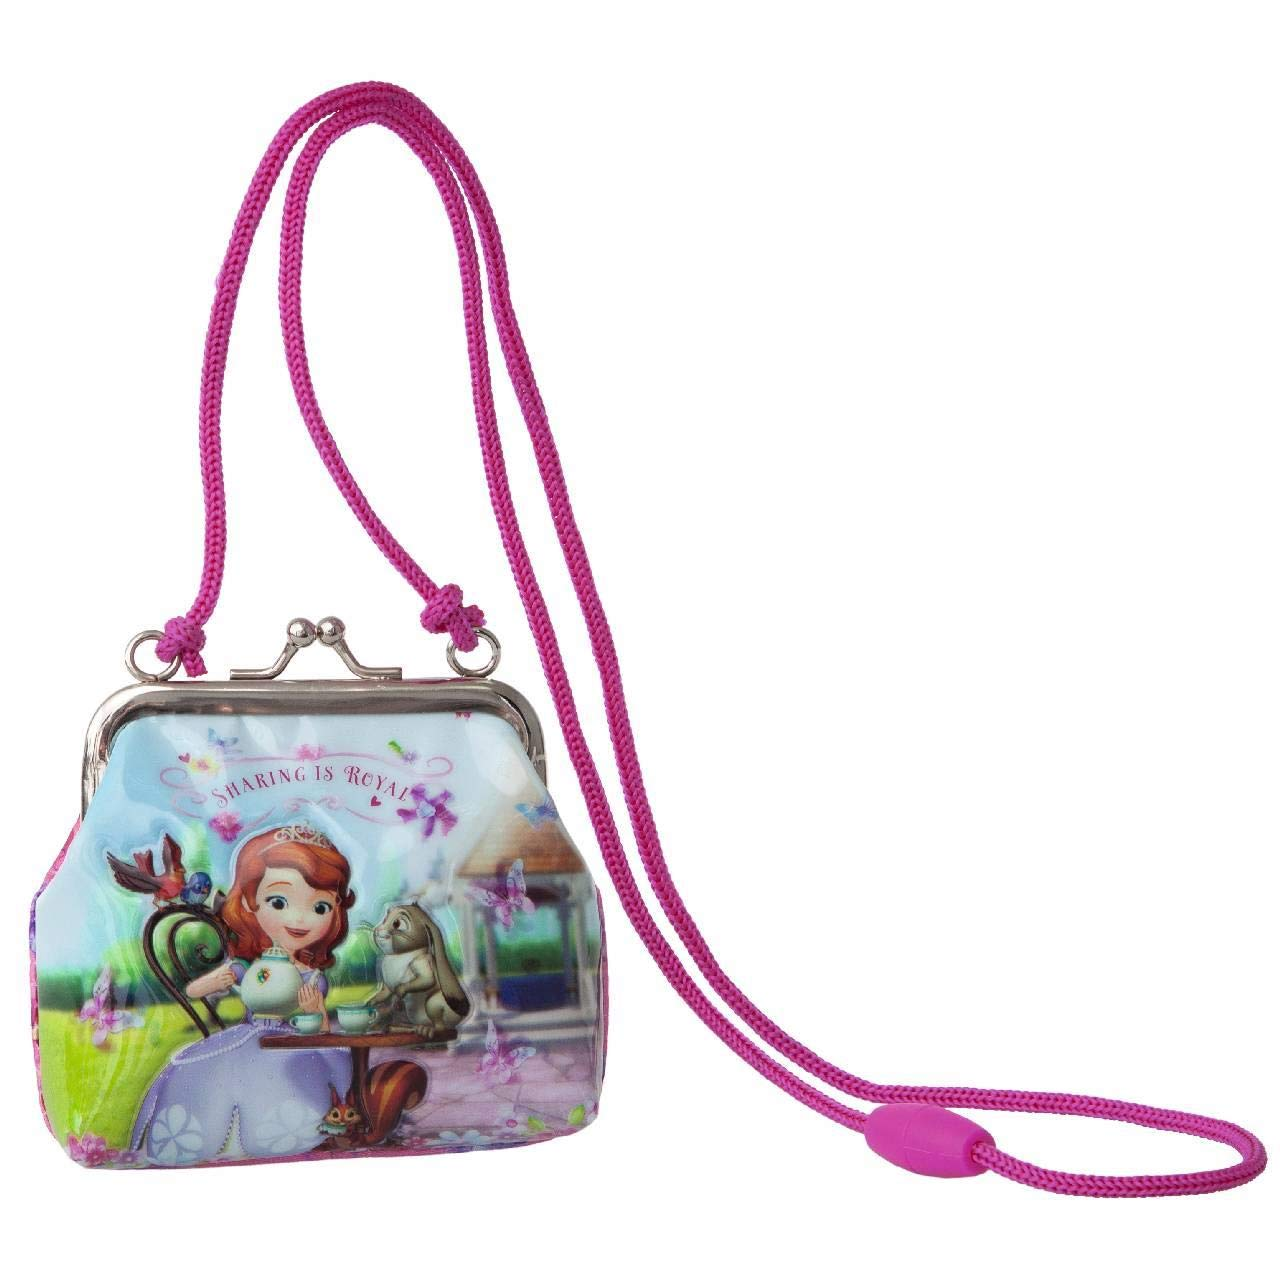 Amazon.com: Disney Princesa Sofia Bolso/monedas bolsa, 4.3 ...